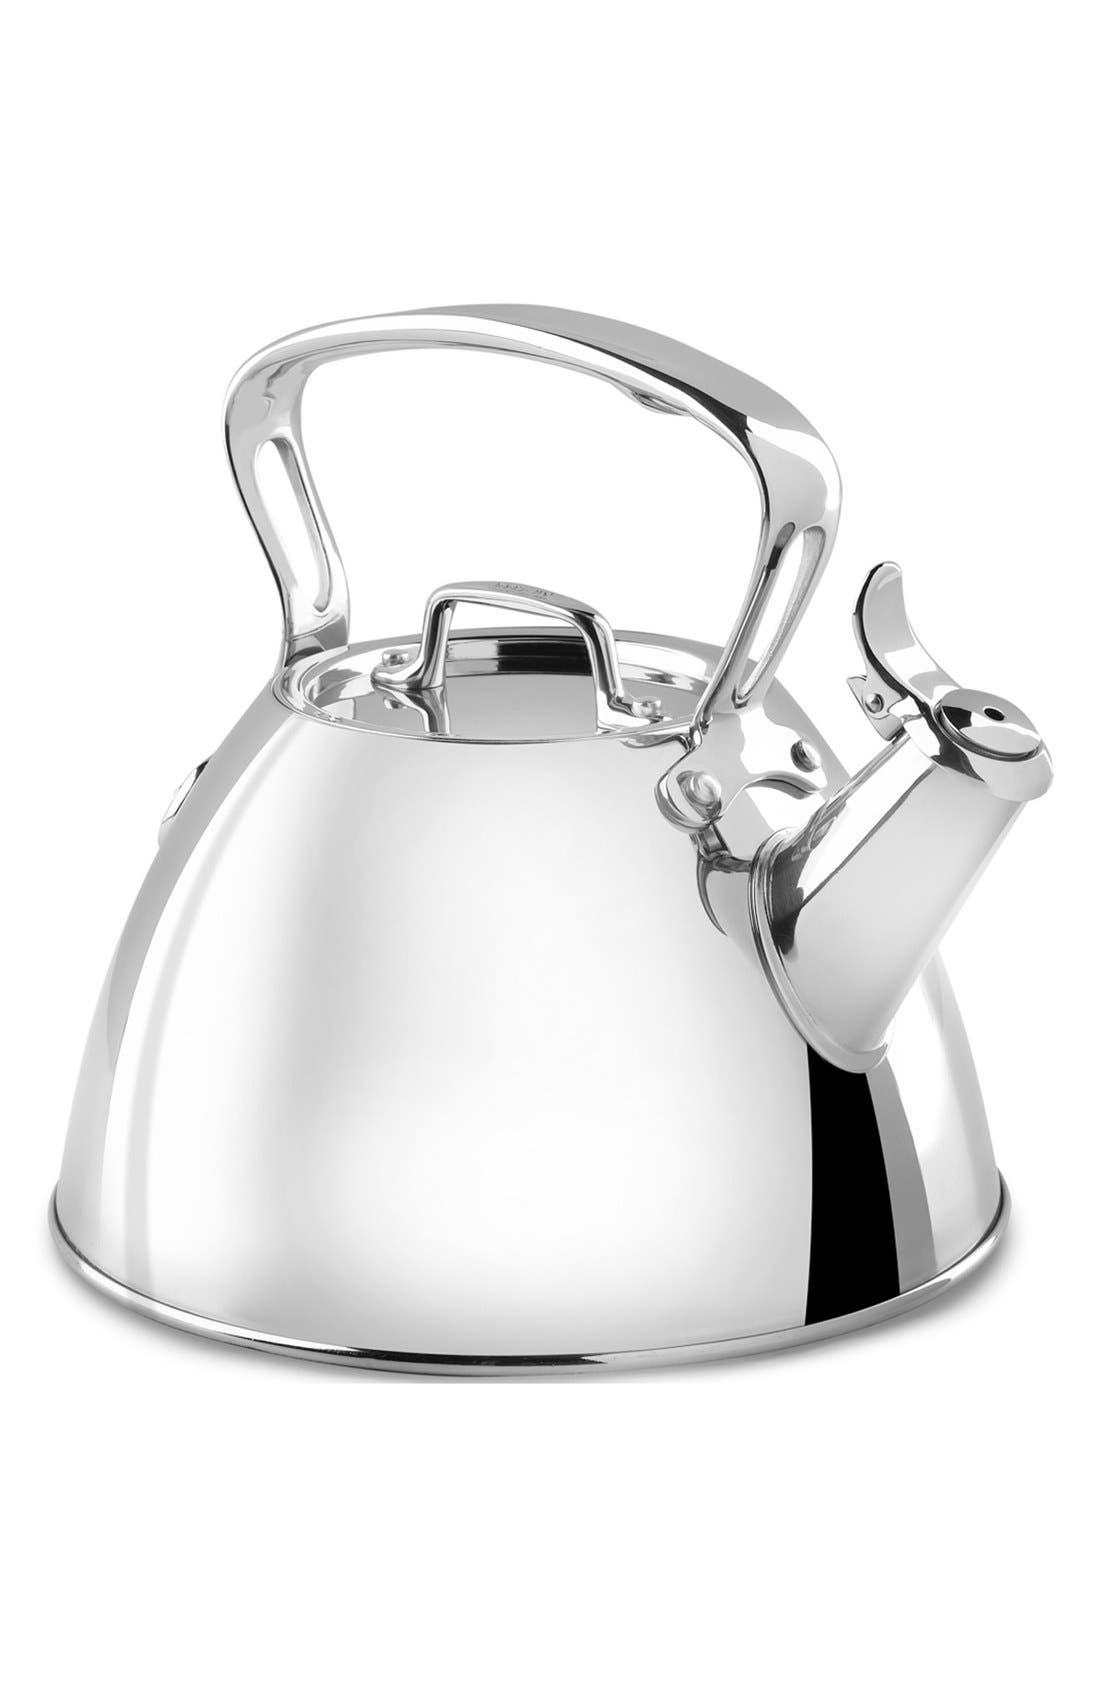 2-Quart Stainless Steel Tea Kettle,                         Main,                         color, Stainless Steel